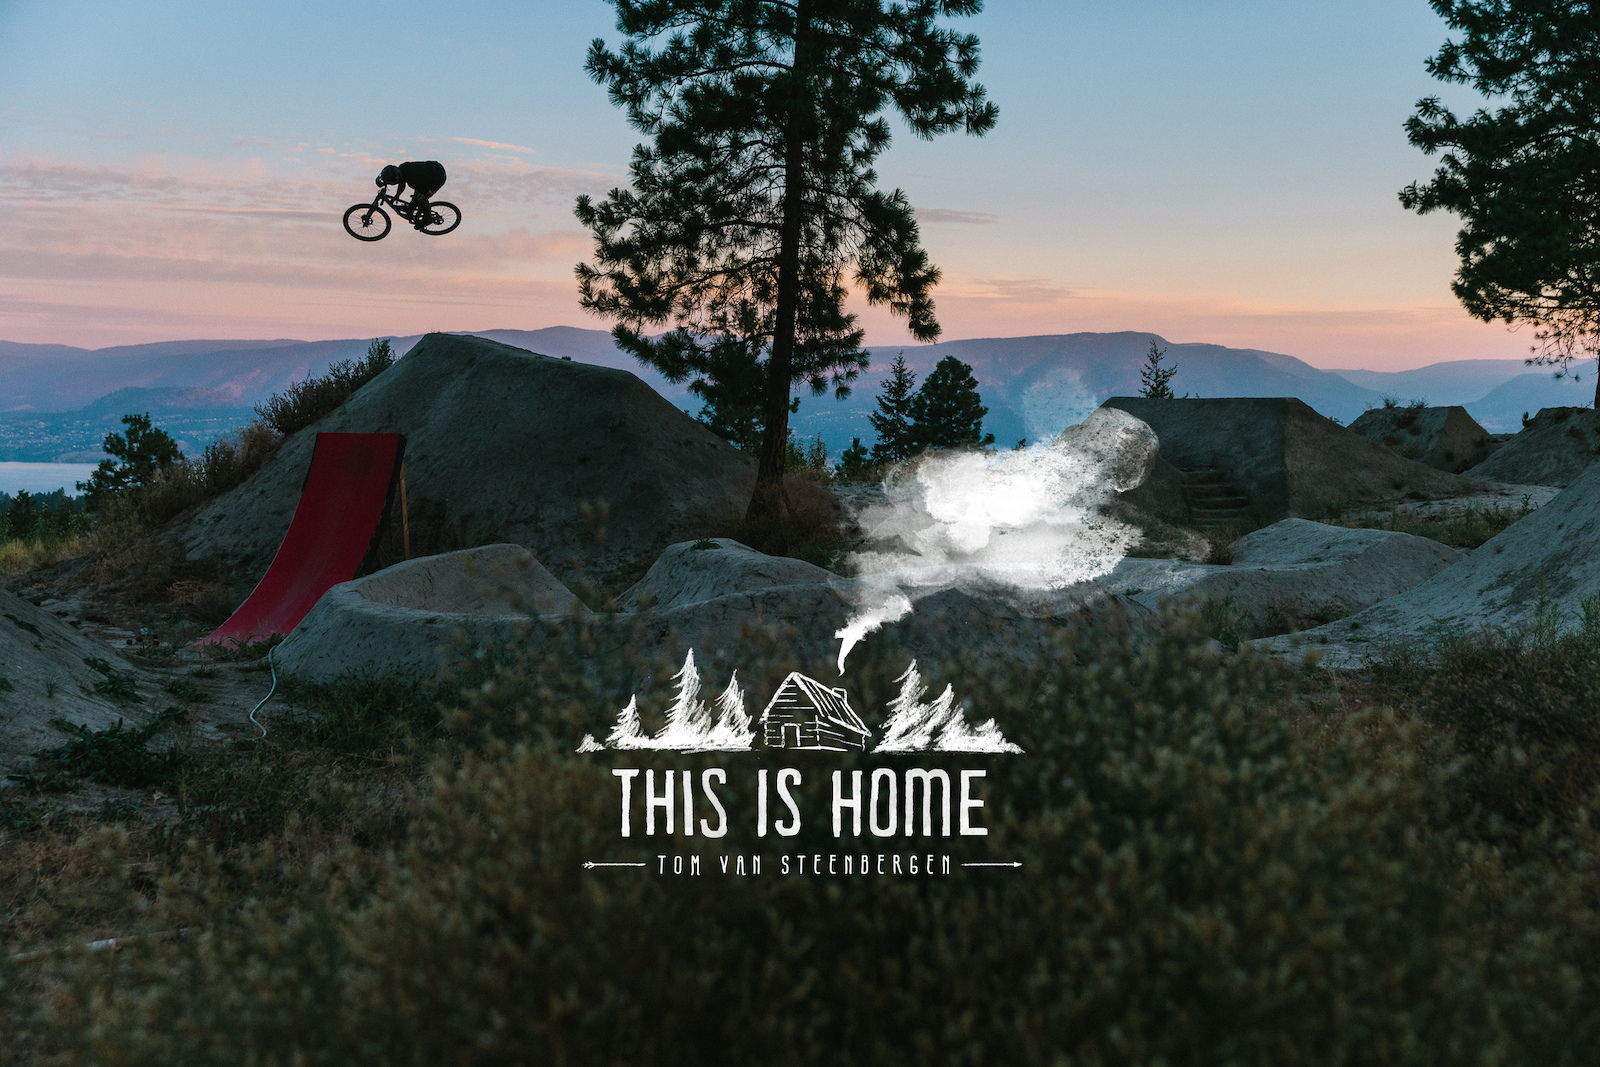 Image for This is Home Tom van Steenbergen article